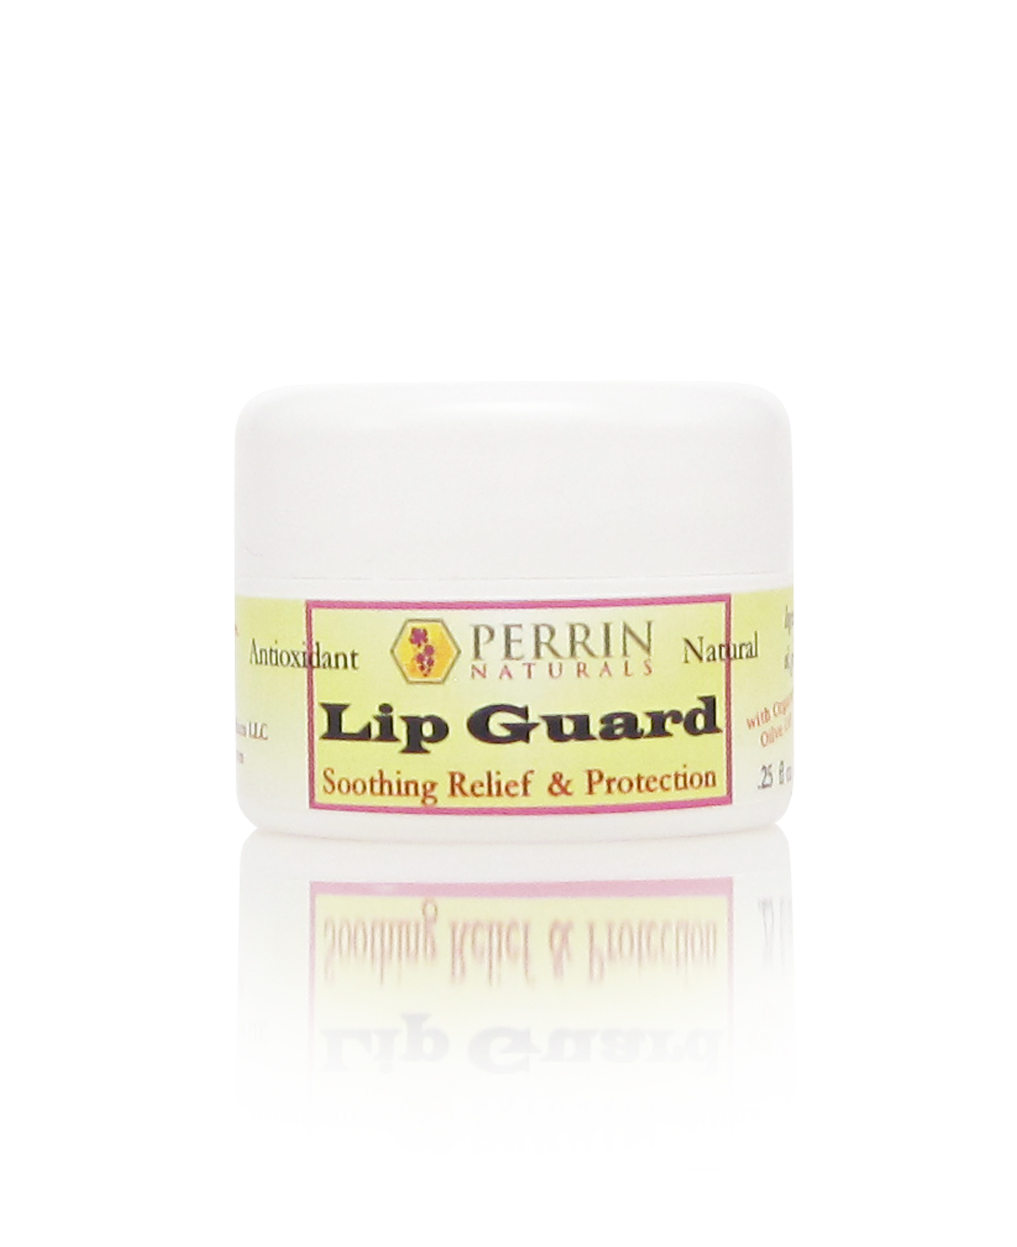 perrin naturals lip guard cream